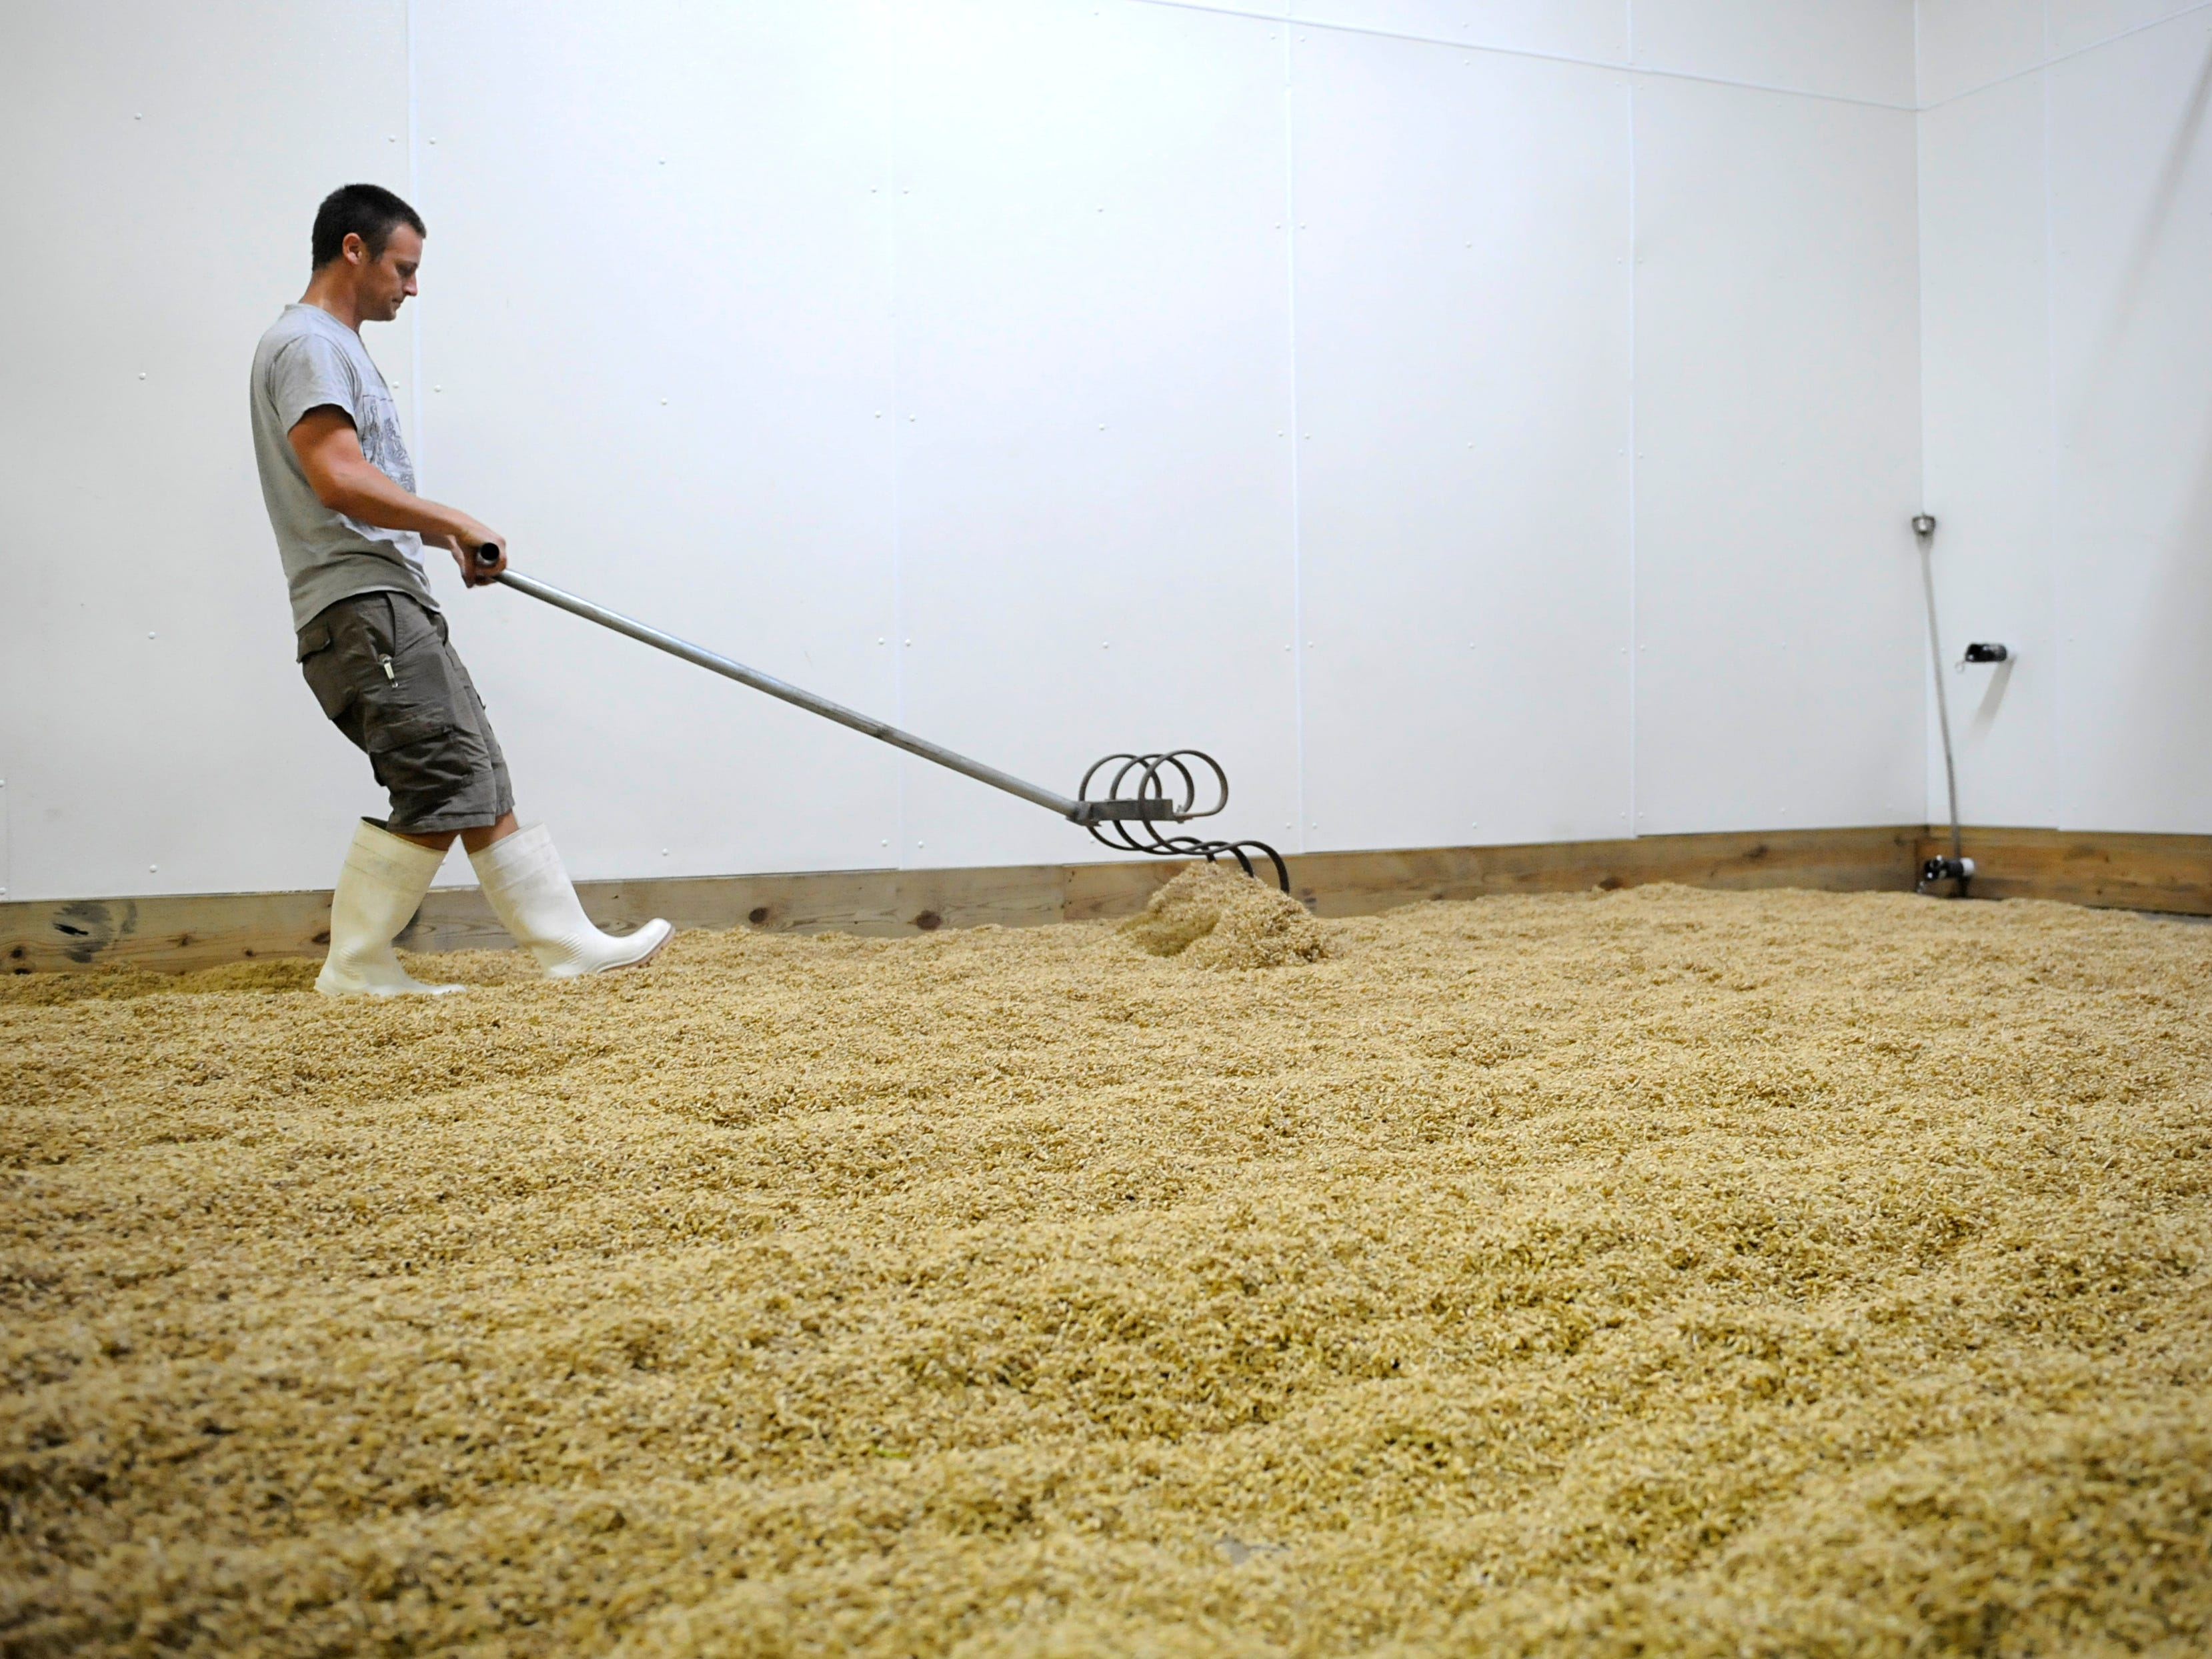 Rabbit Hill Farms in Shiloh, Cumberland County grows and converts grain into malt which is then used to make beer.